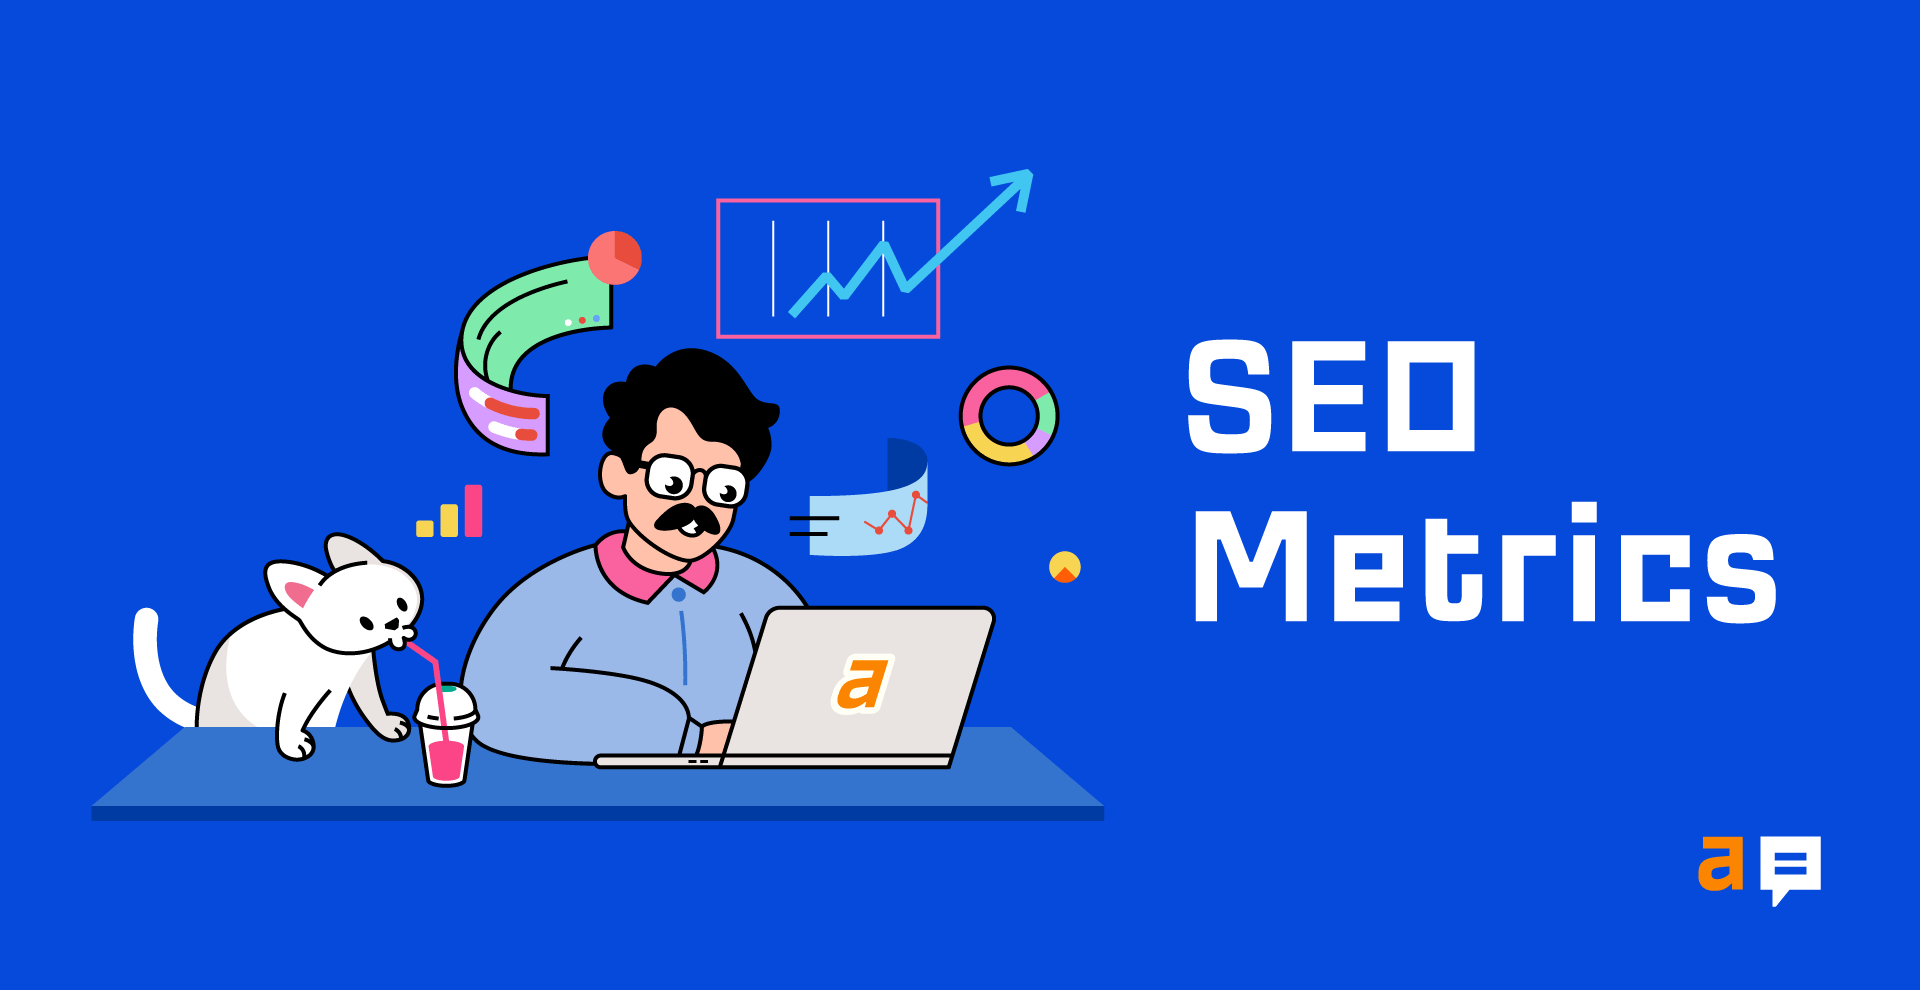 10 SEO Metrics That Actually Matter (And 4 That Don't)